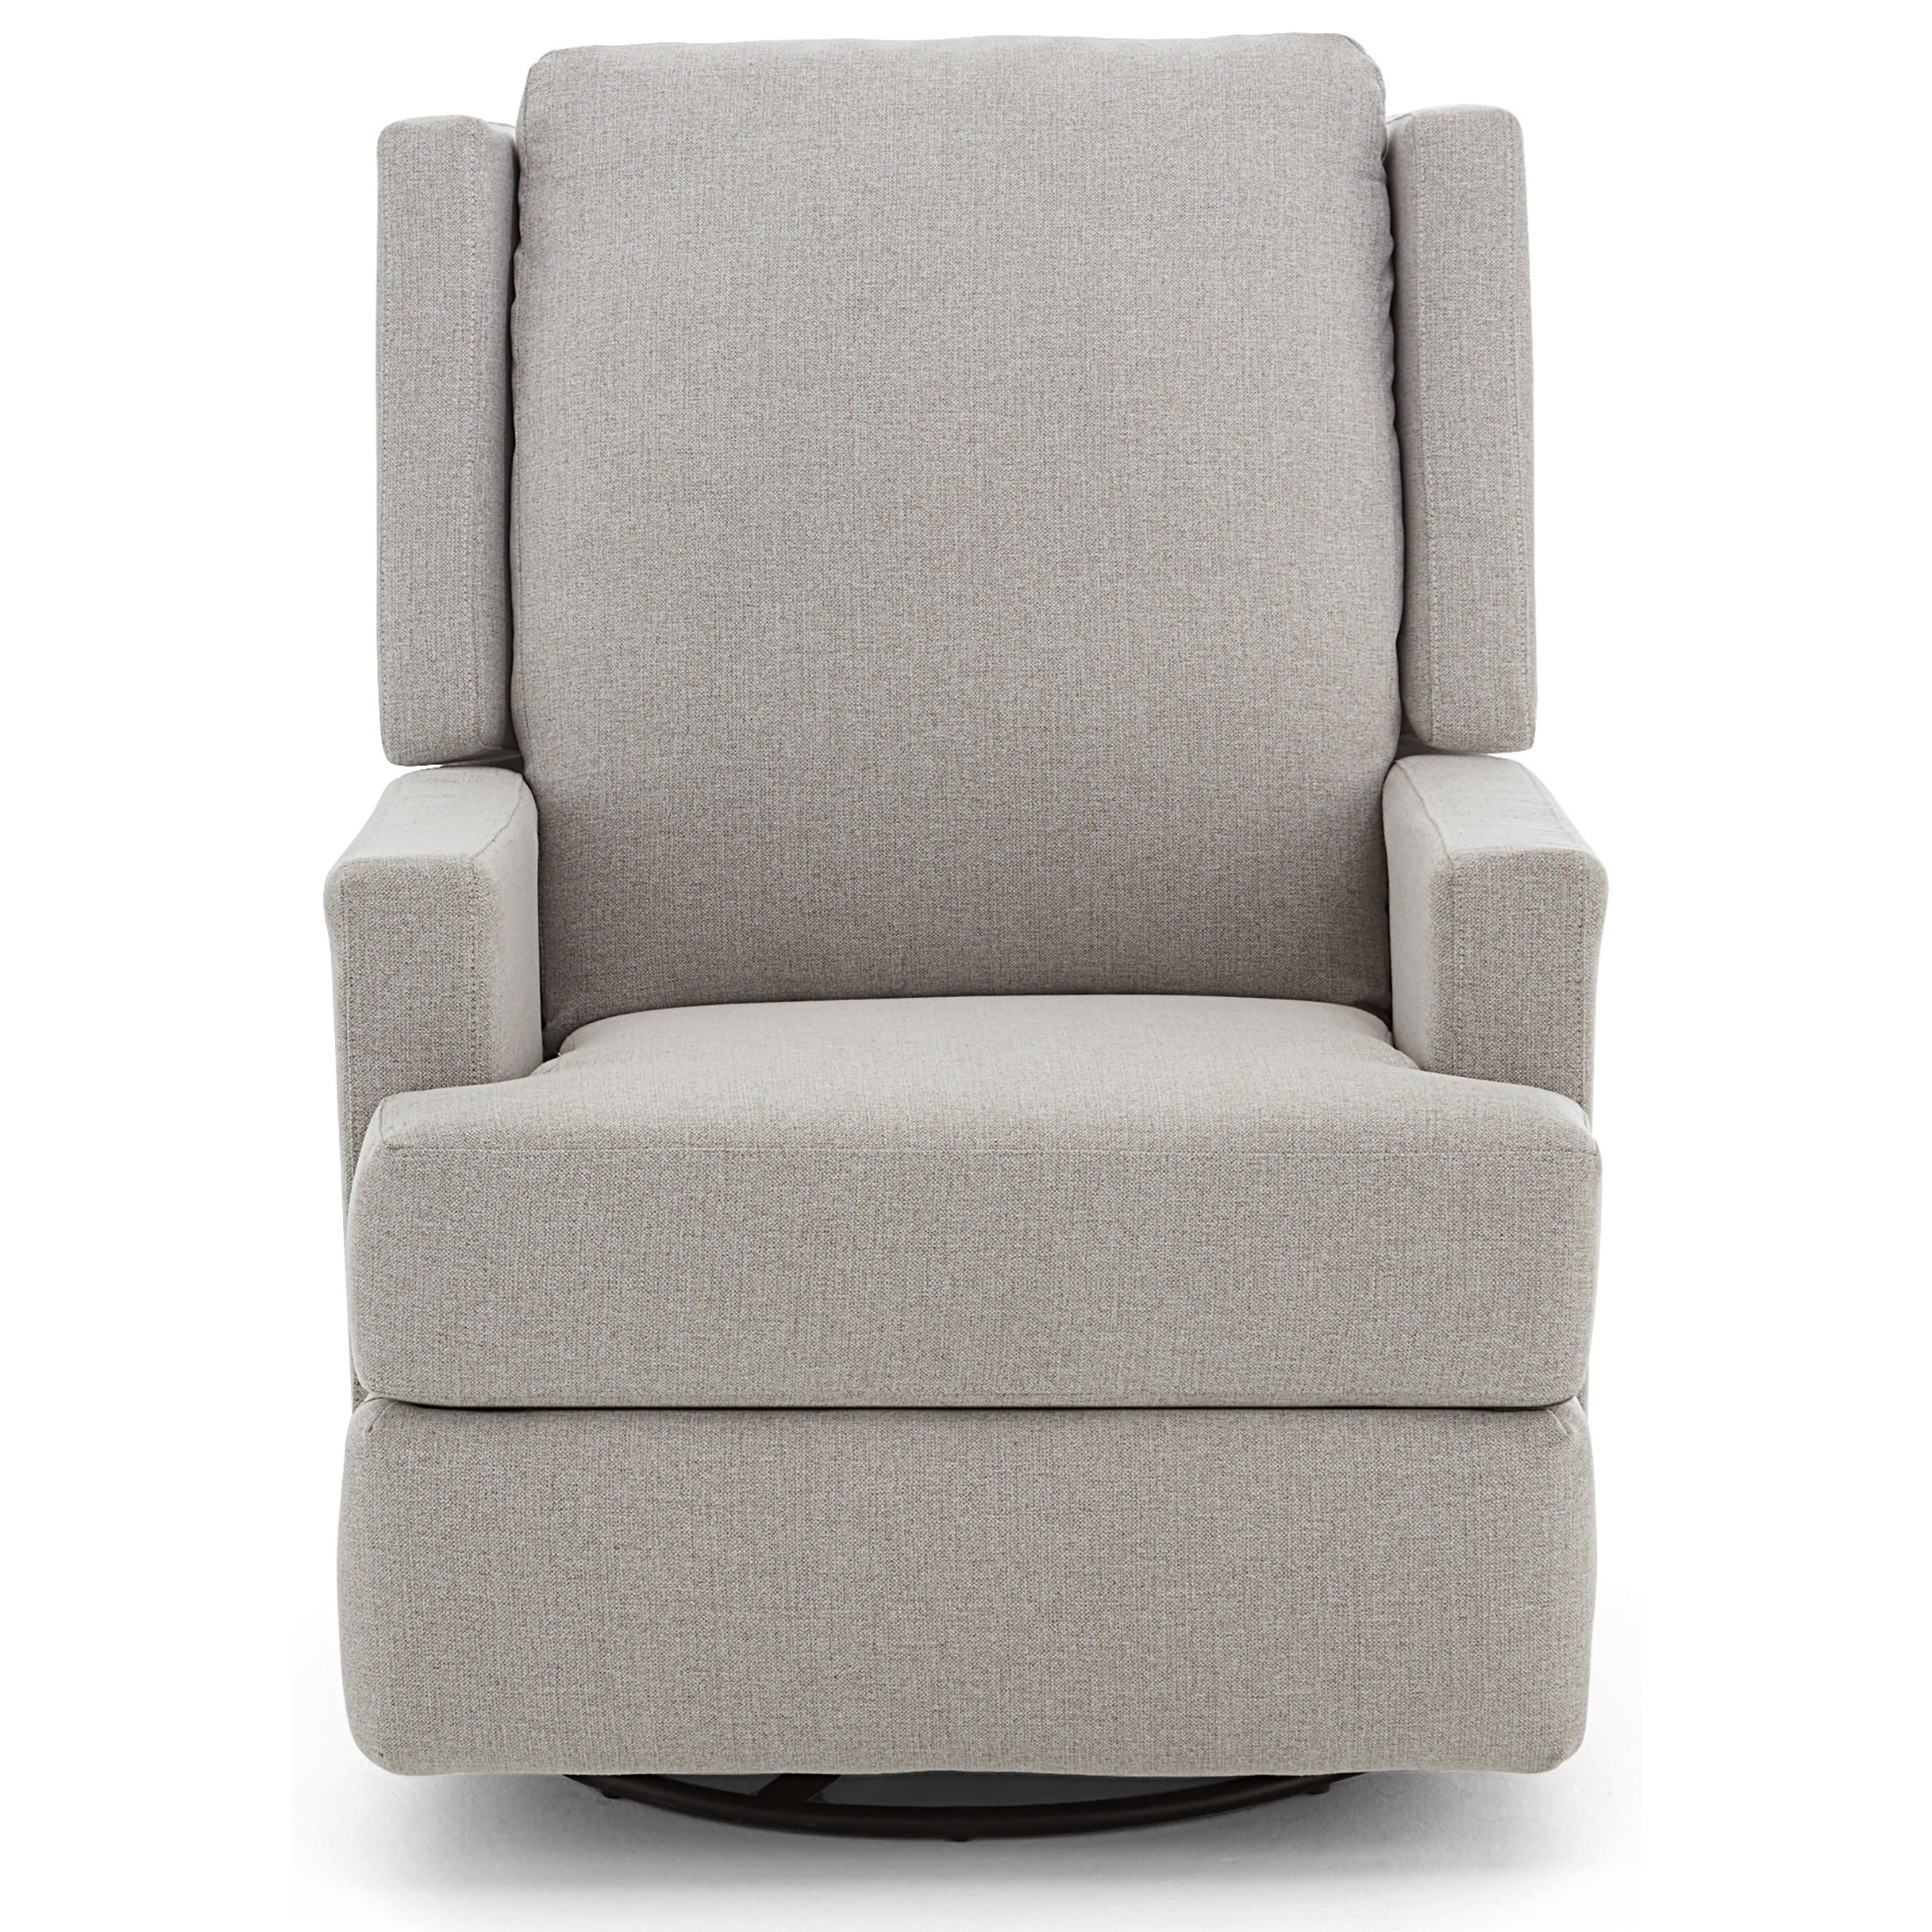 Ainsley Swivel Glider Recliner by Best Home Furnishings at Suburban Furniture